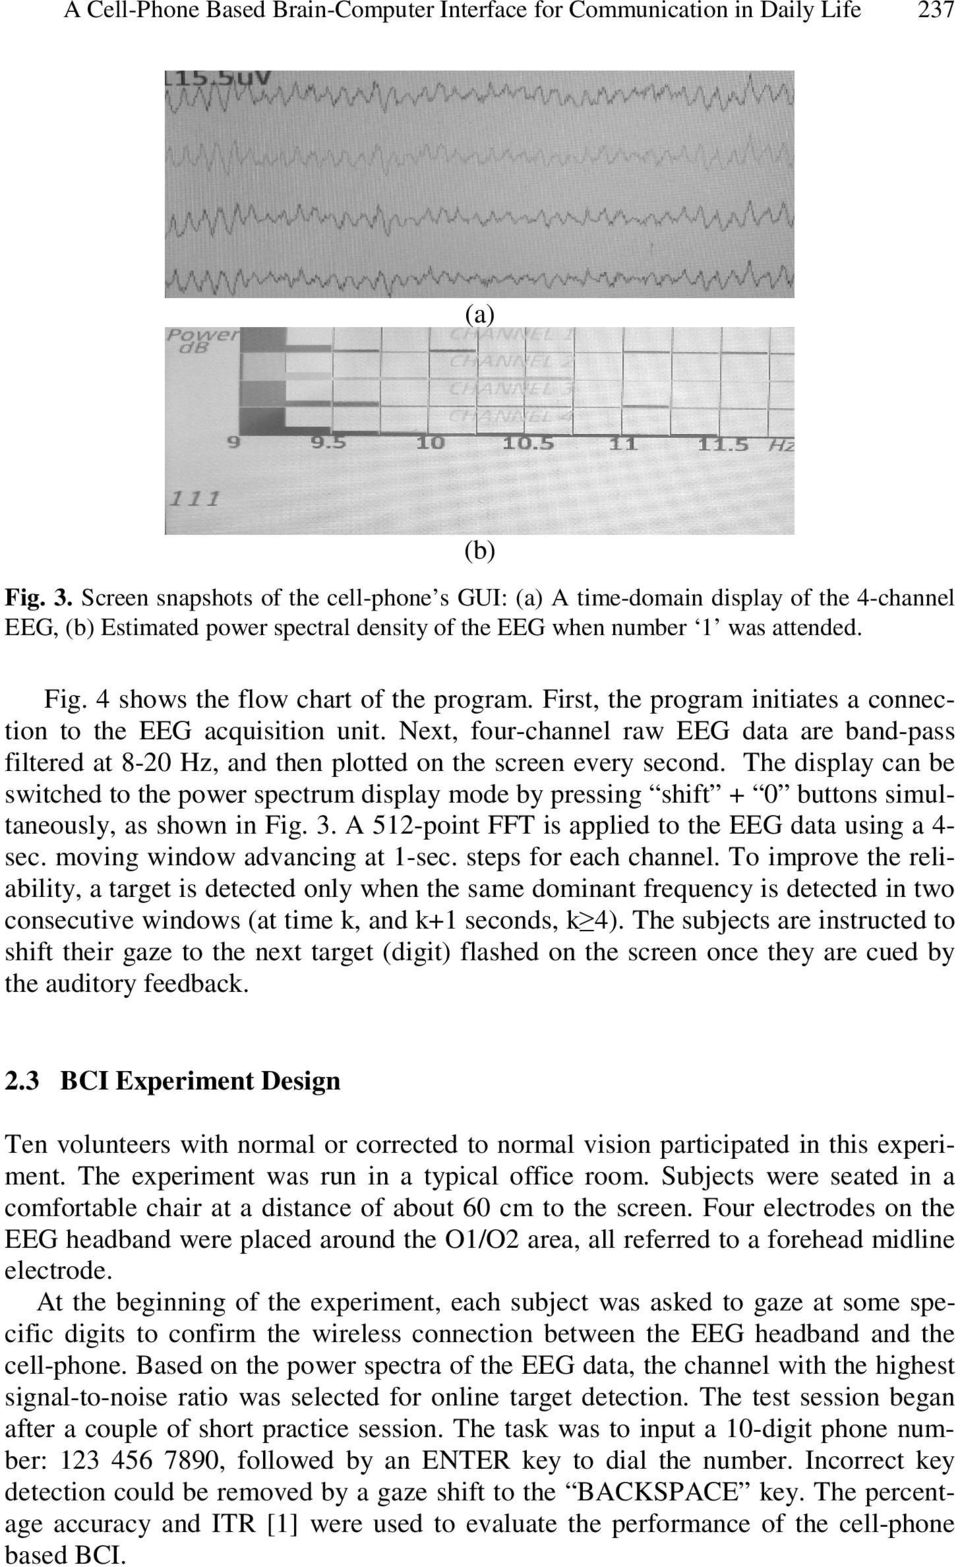 A Cell-Phone Based Brain-Computer Interface for